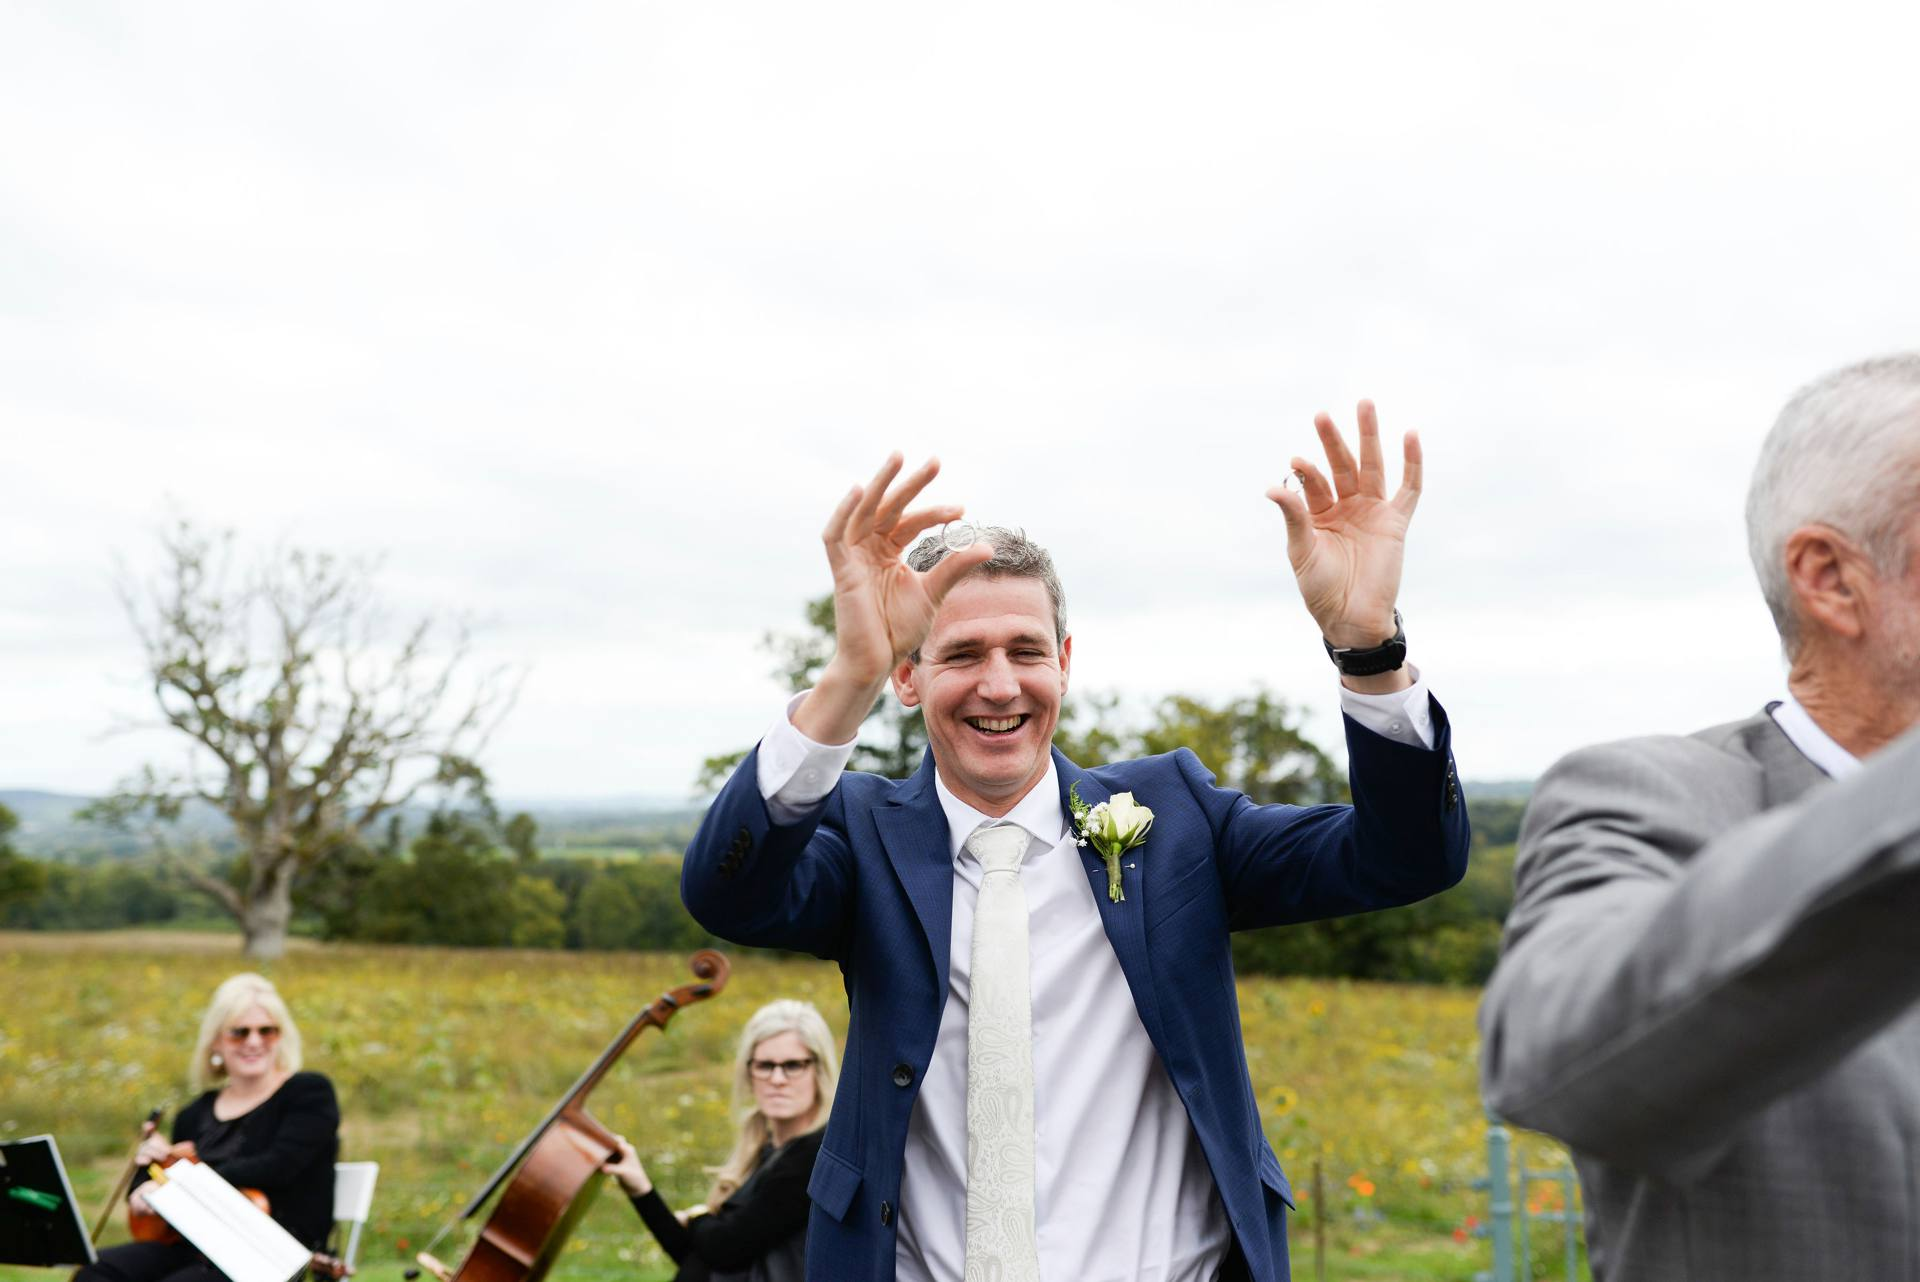 Best man holding up the wedding rings